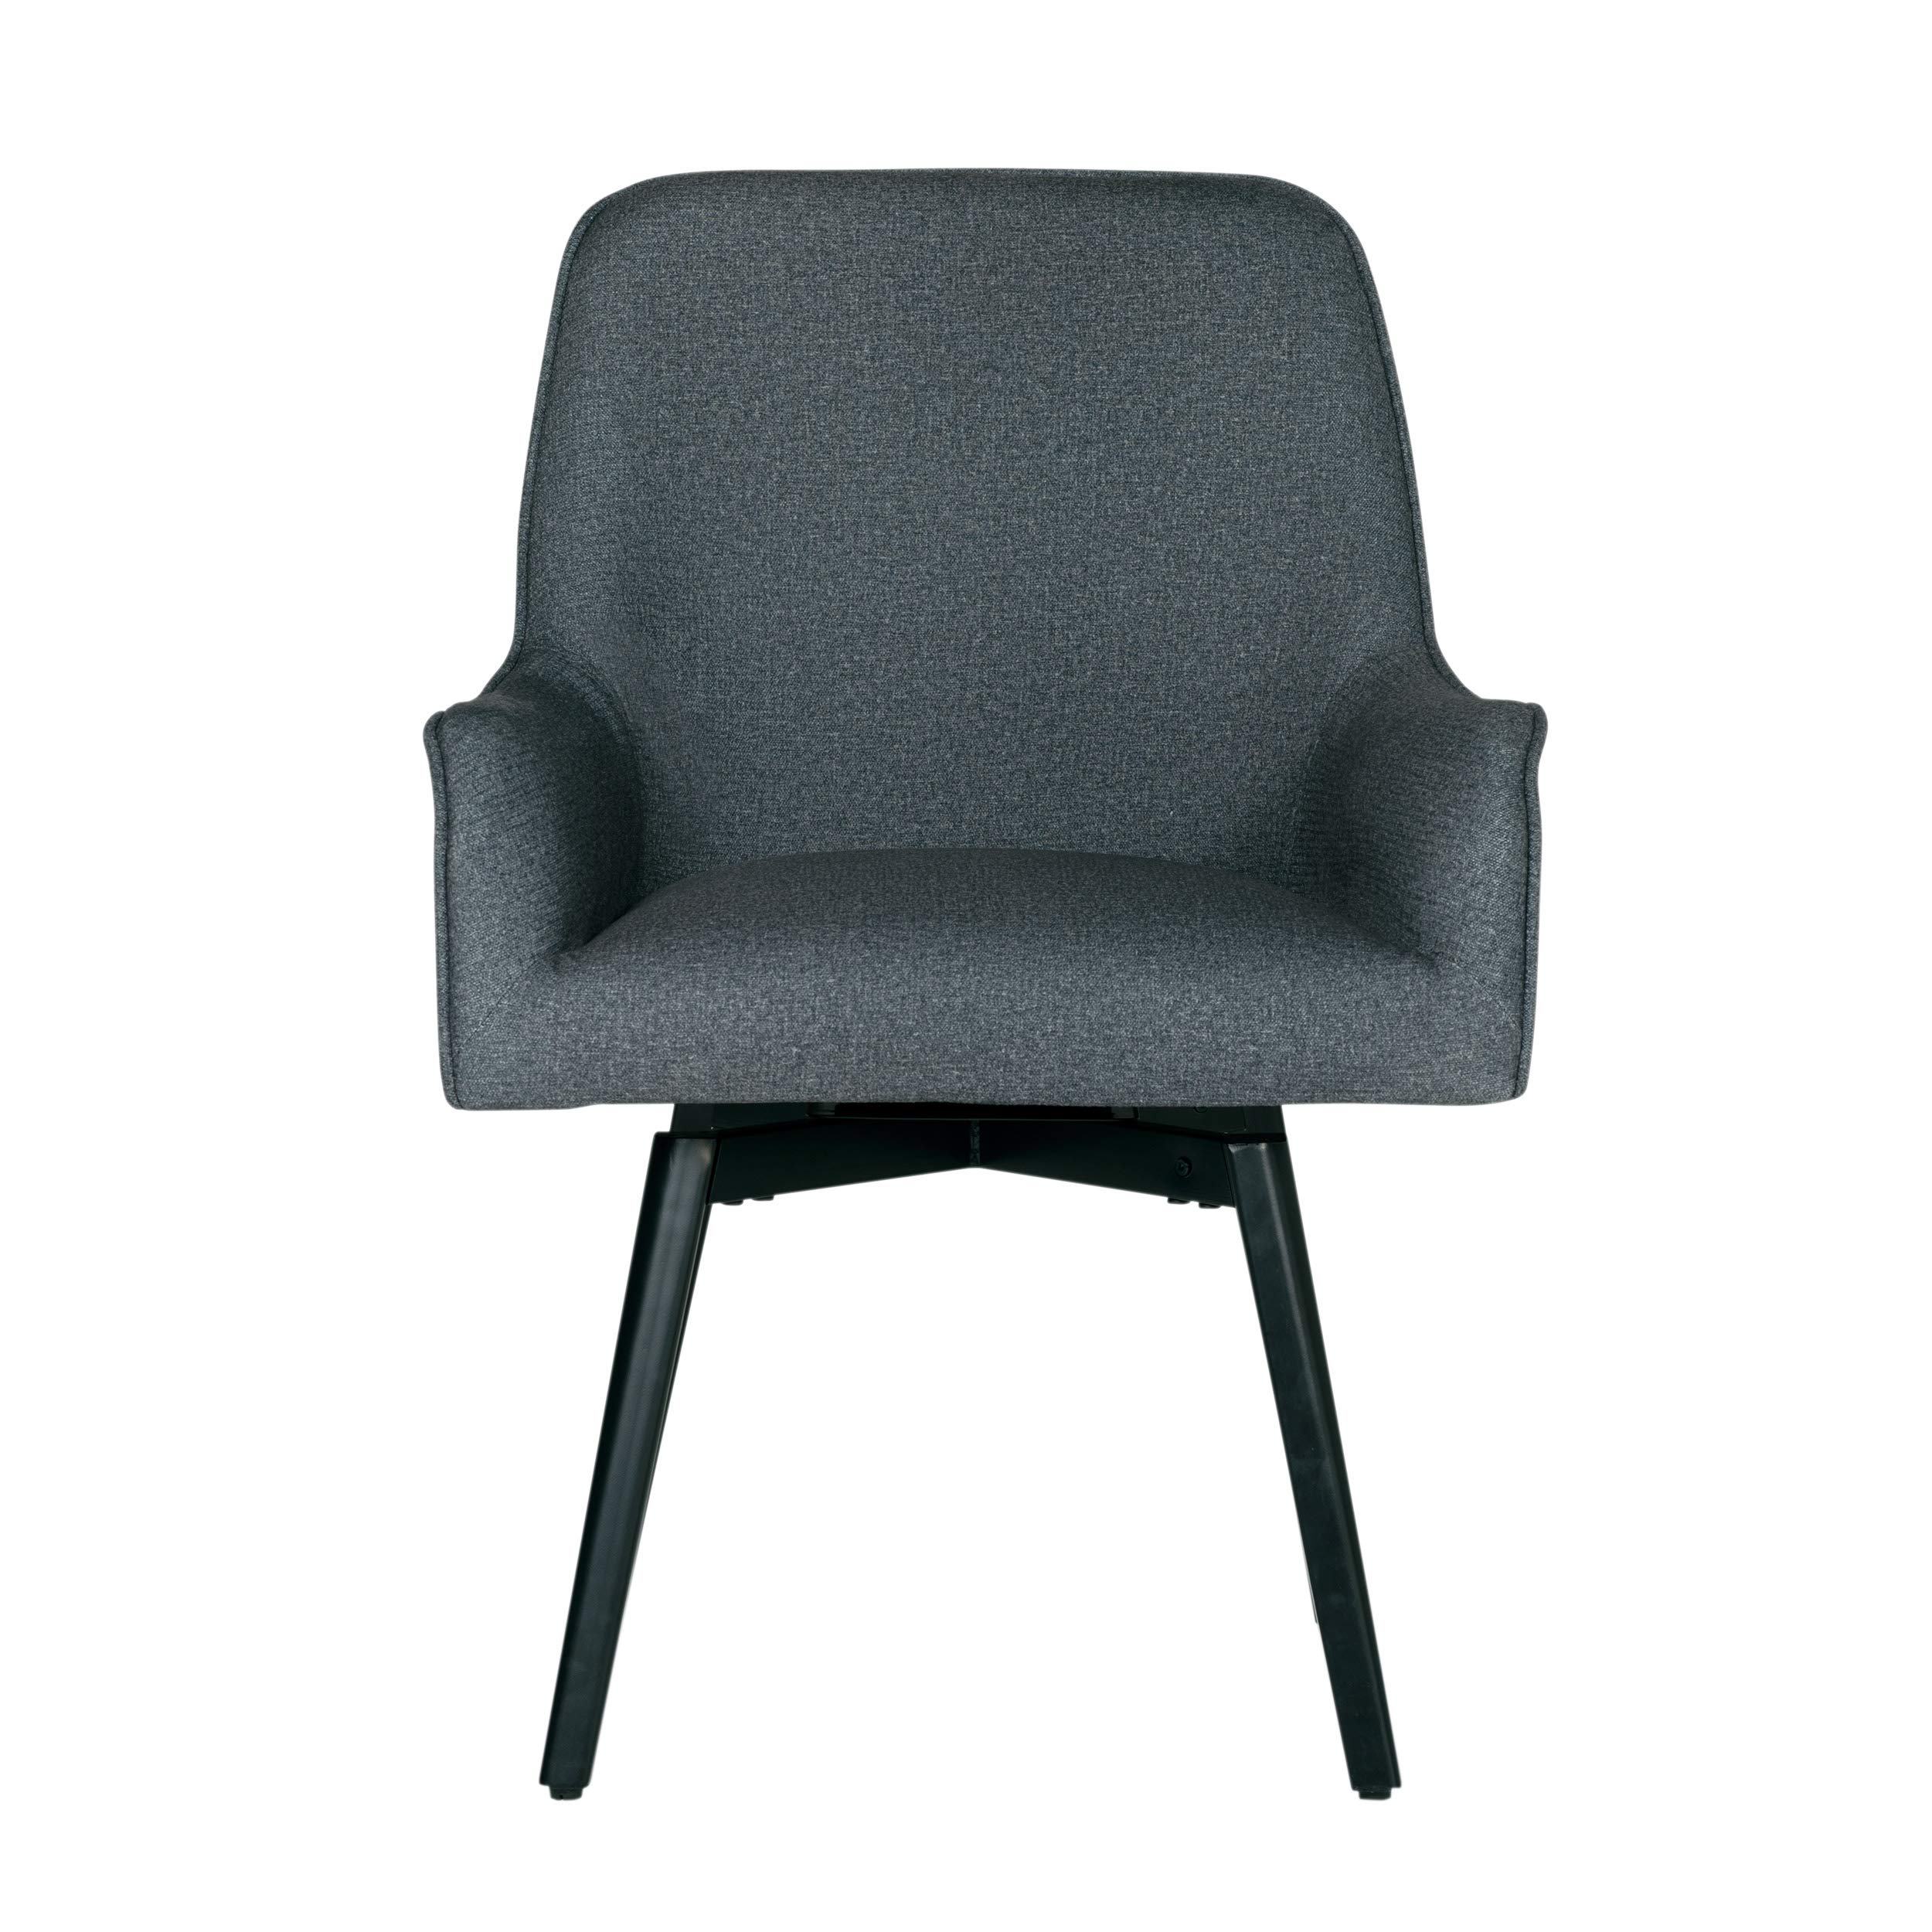 Studio Designs Home Contemporary Spire Luxe Swivel, Rotating, Upholstered, Accent Dining/Office Chair with Arms and Metal Legs in Charcoal Gray